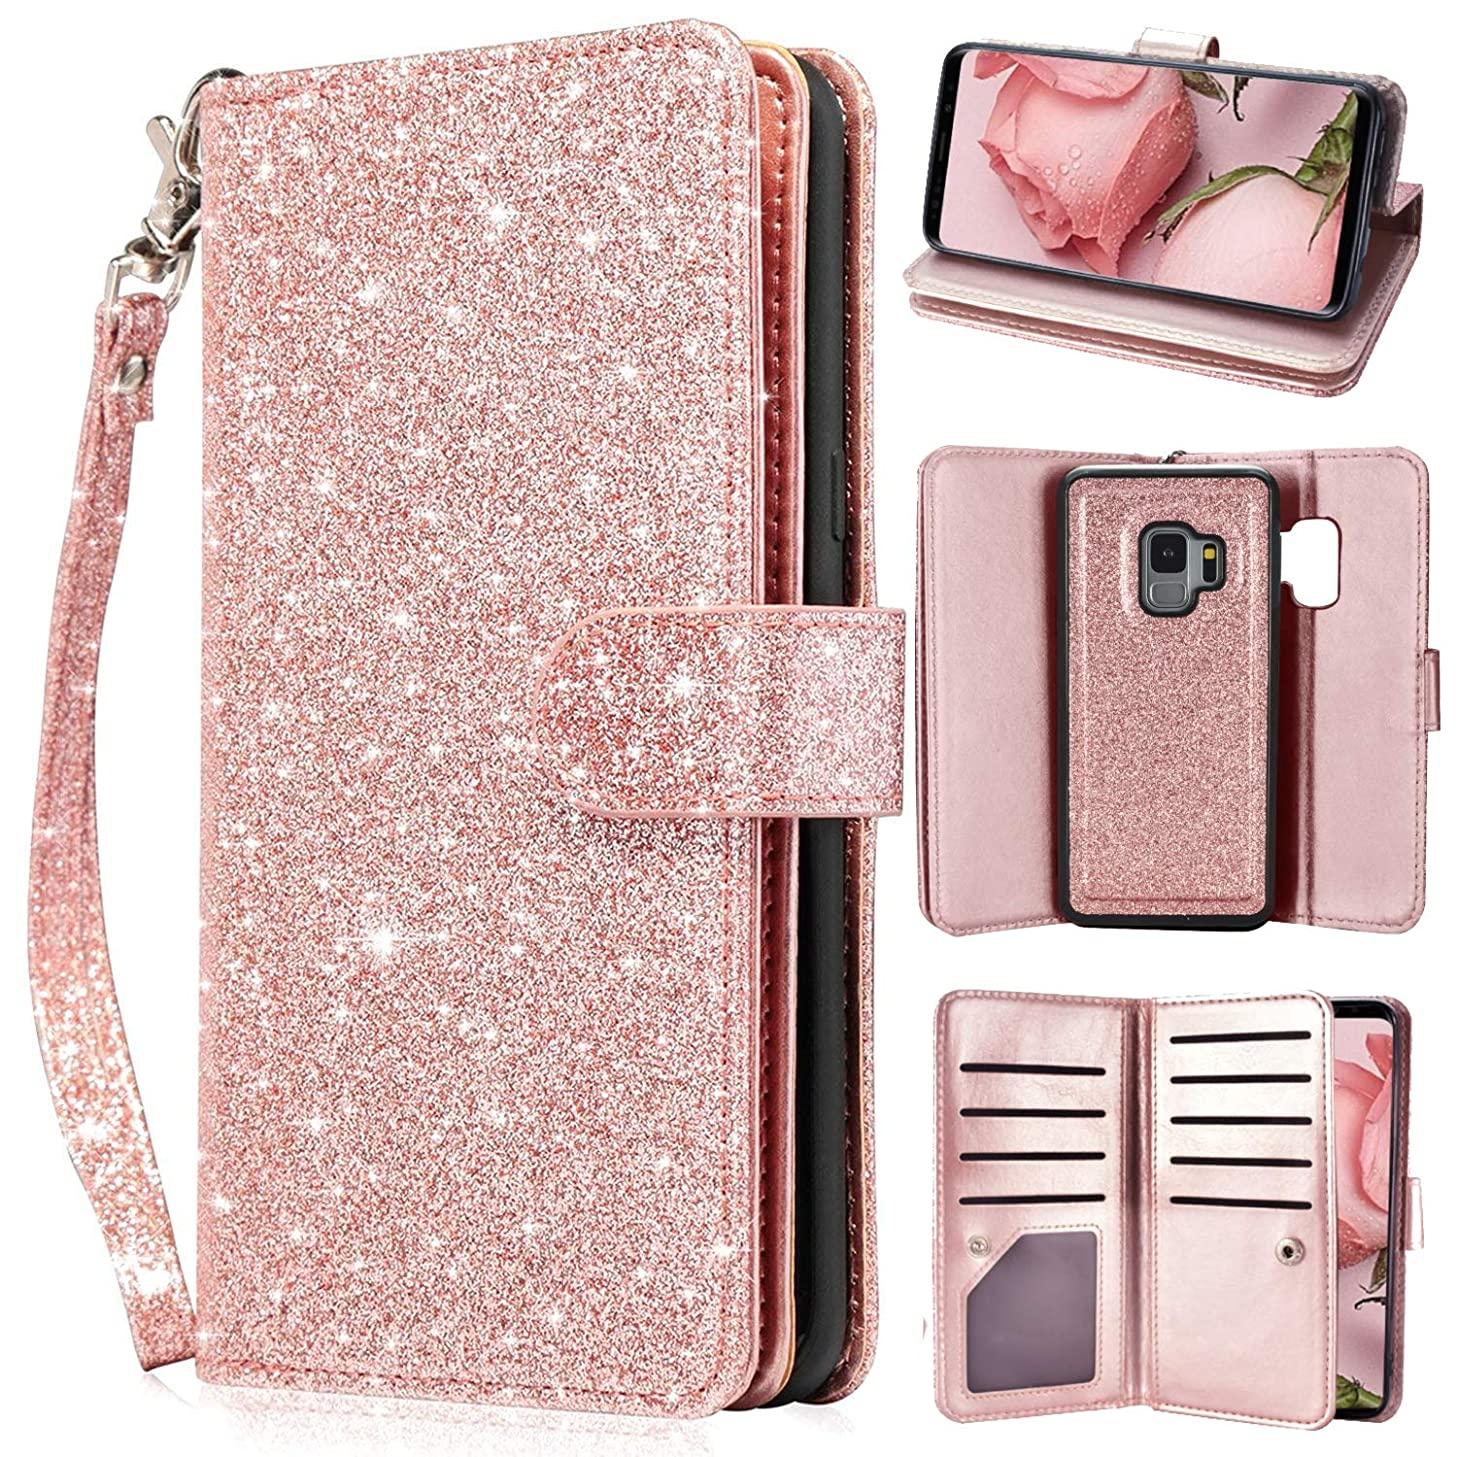 Newseego Galaxy S9 Leather Case,Glitter Shiny Faux PU Leather Magnetic Closure Multi-CreditCard Slot Cash Holder Protective Case Detachable 2 in 1 Wallet Cover with Wrist Strap-Rose Gold